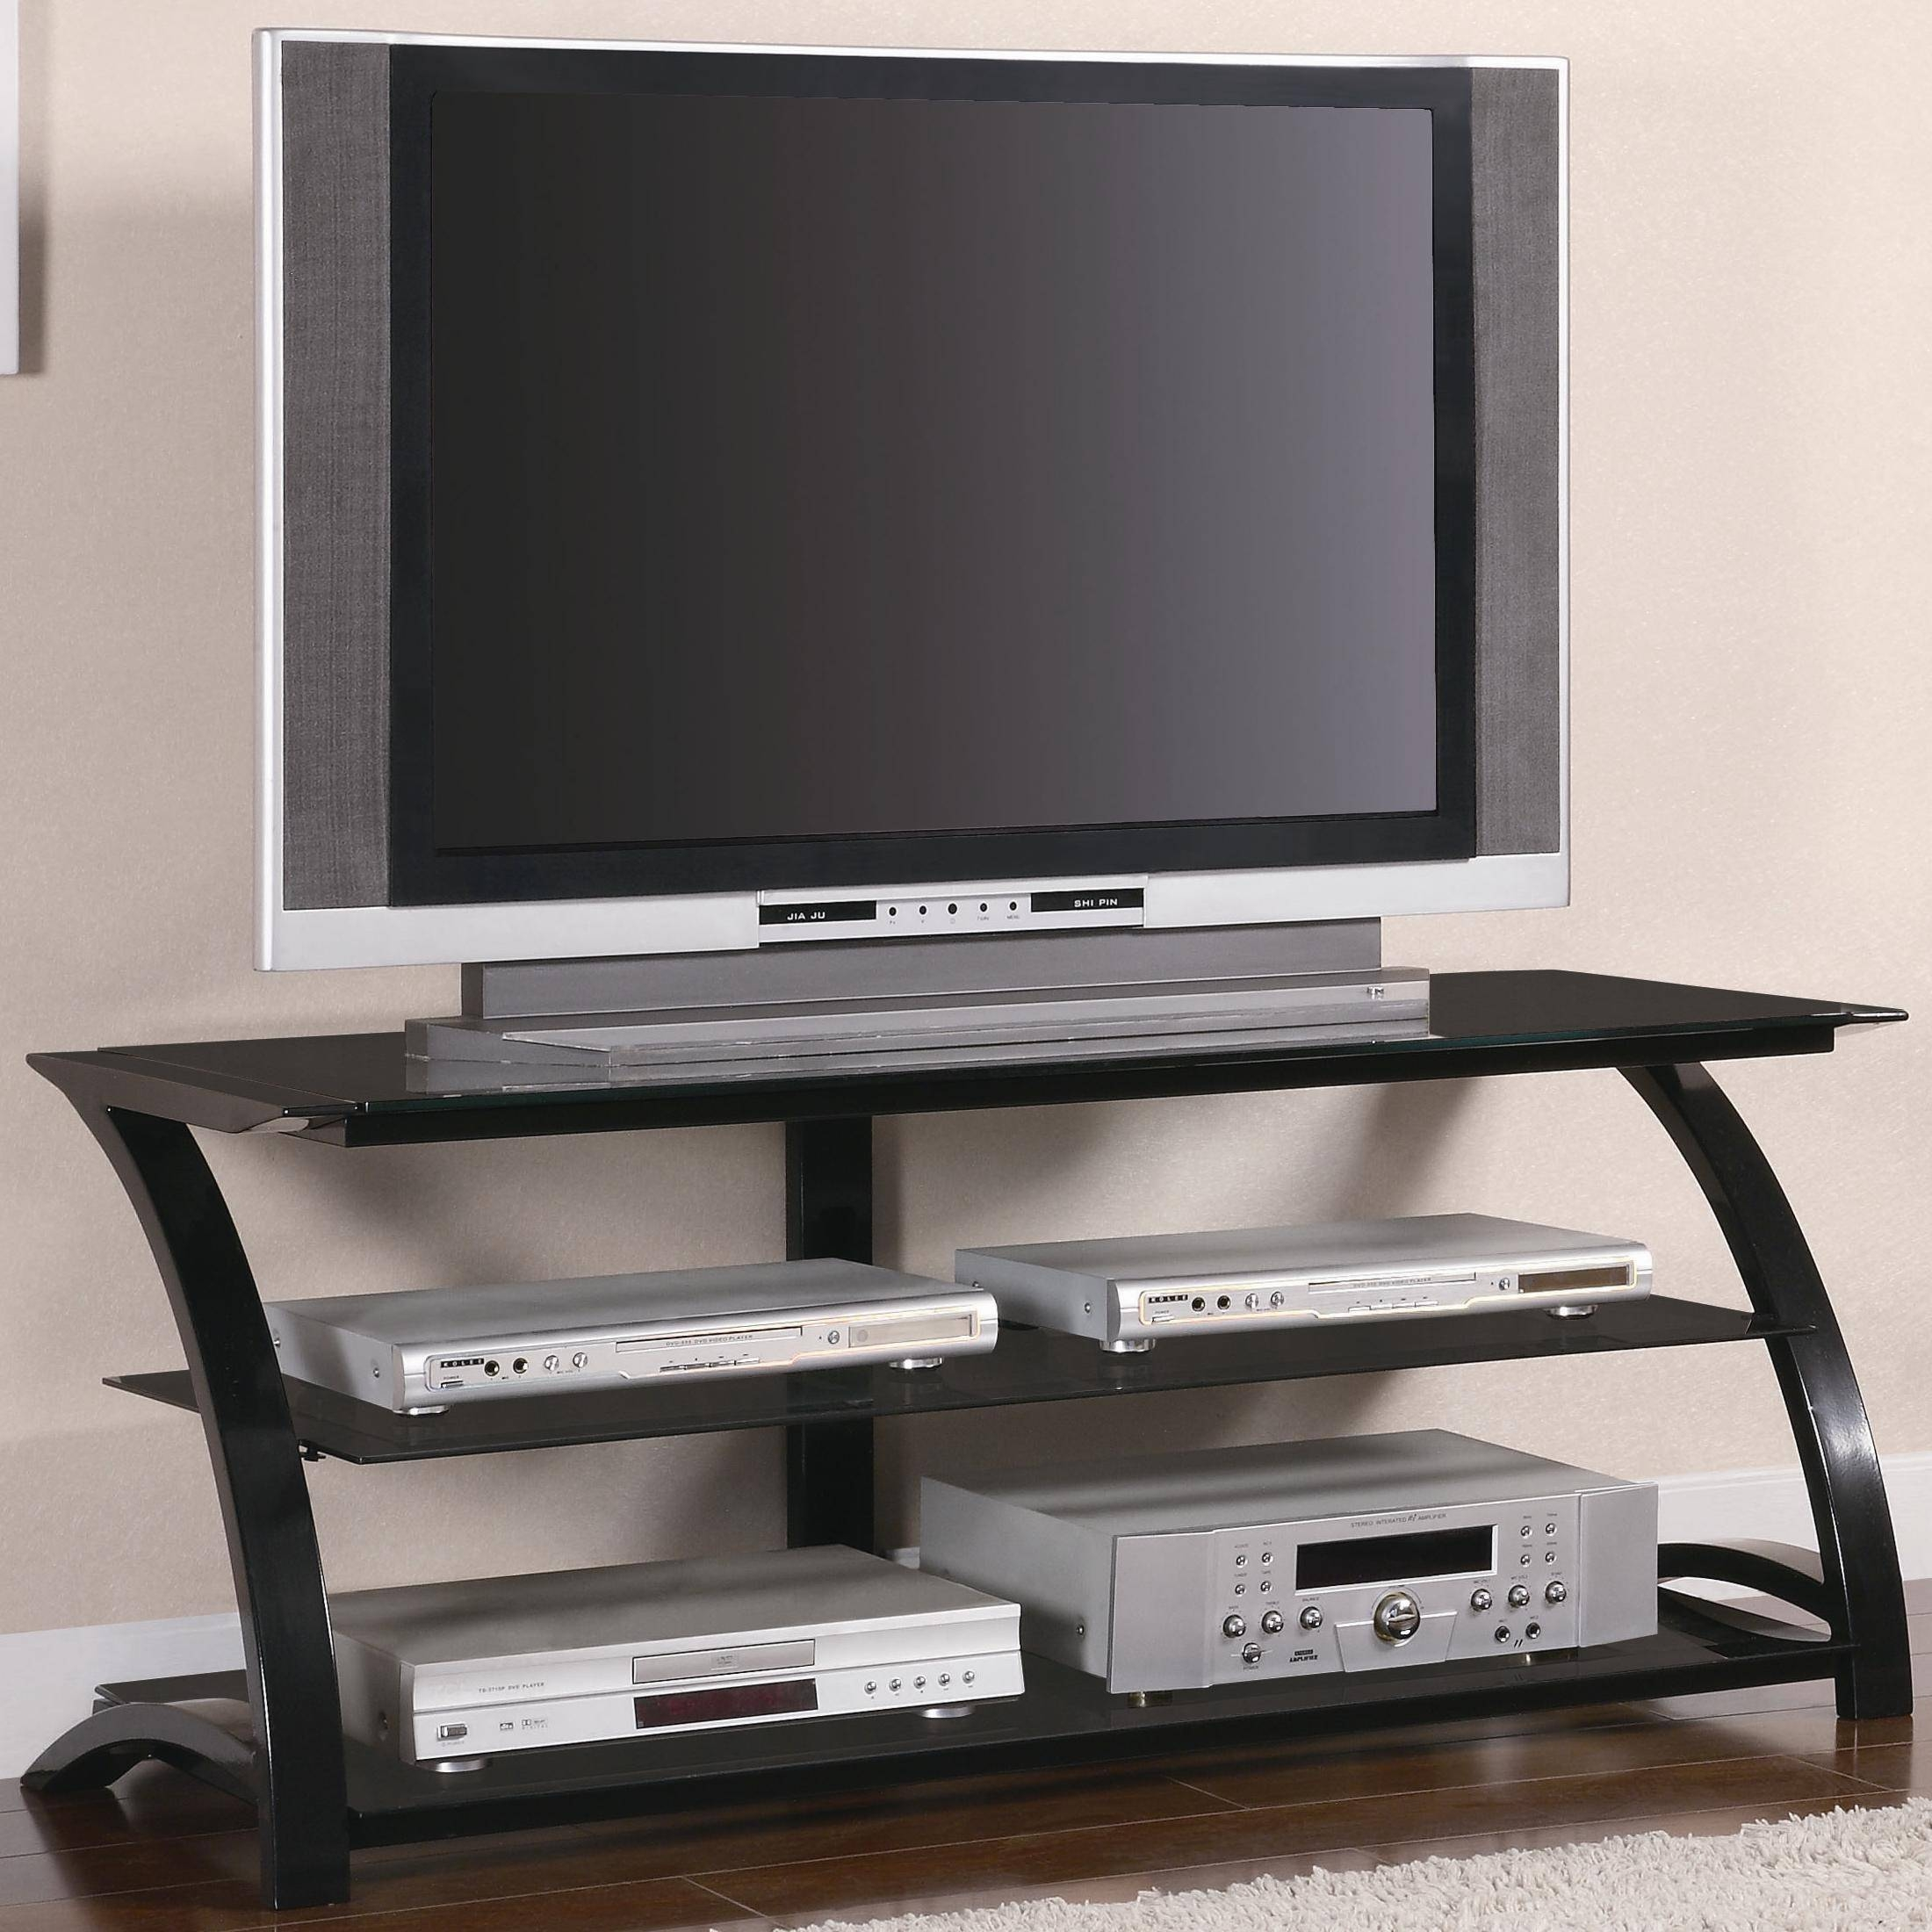 Bedroom : Tv Stand For 50 Inch Tv 65 Inch Tv Stand Black Tv in Unique Corner Tv Stands (Image 1 of 15)